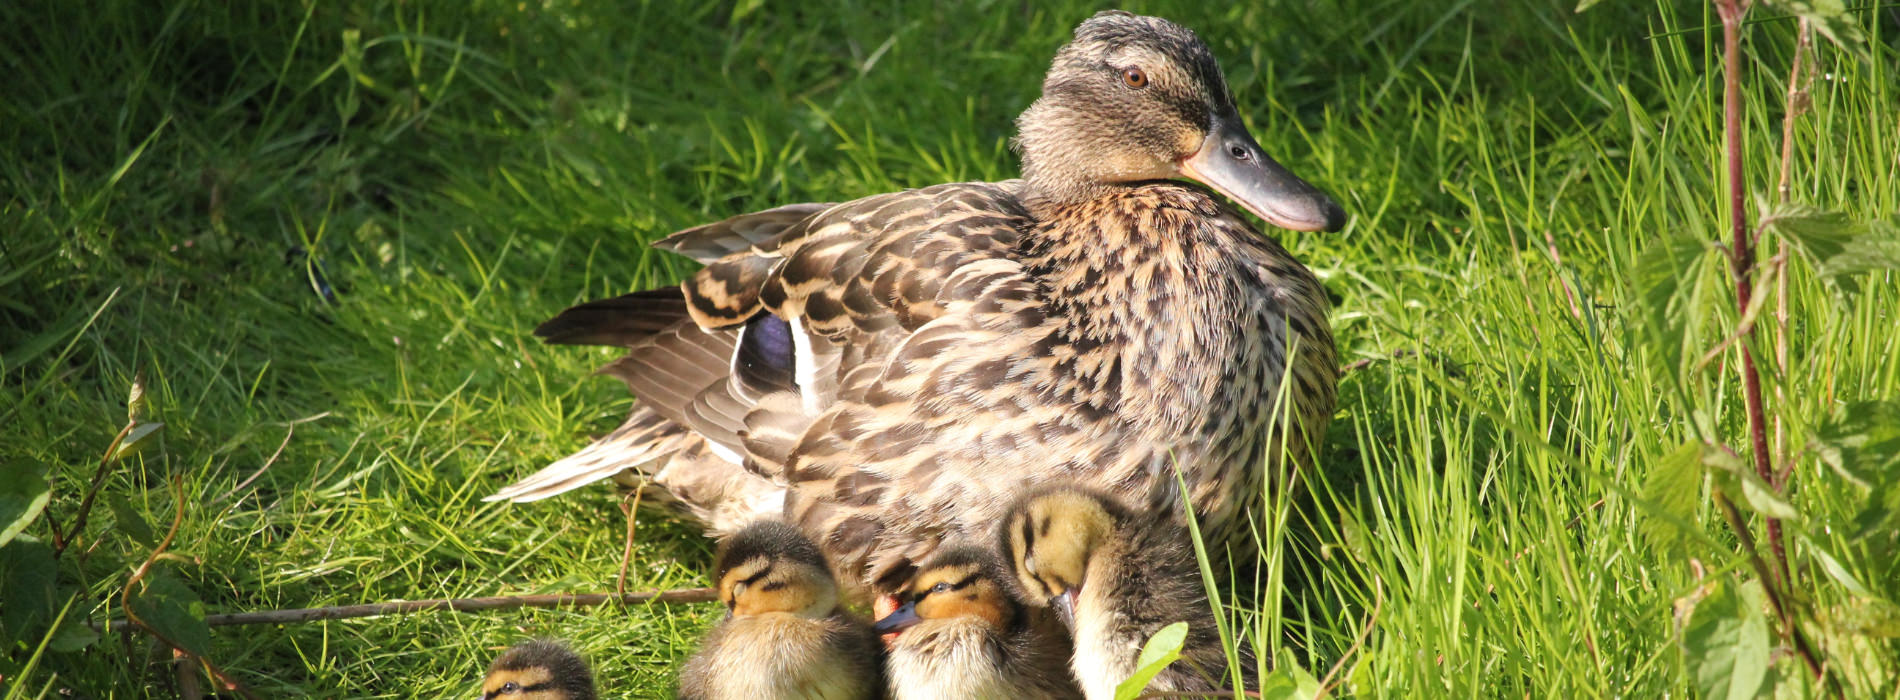 An adult duck with several ducklings